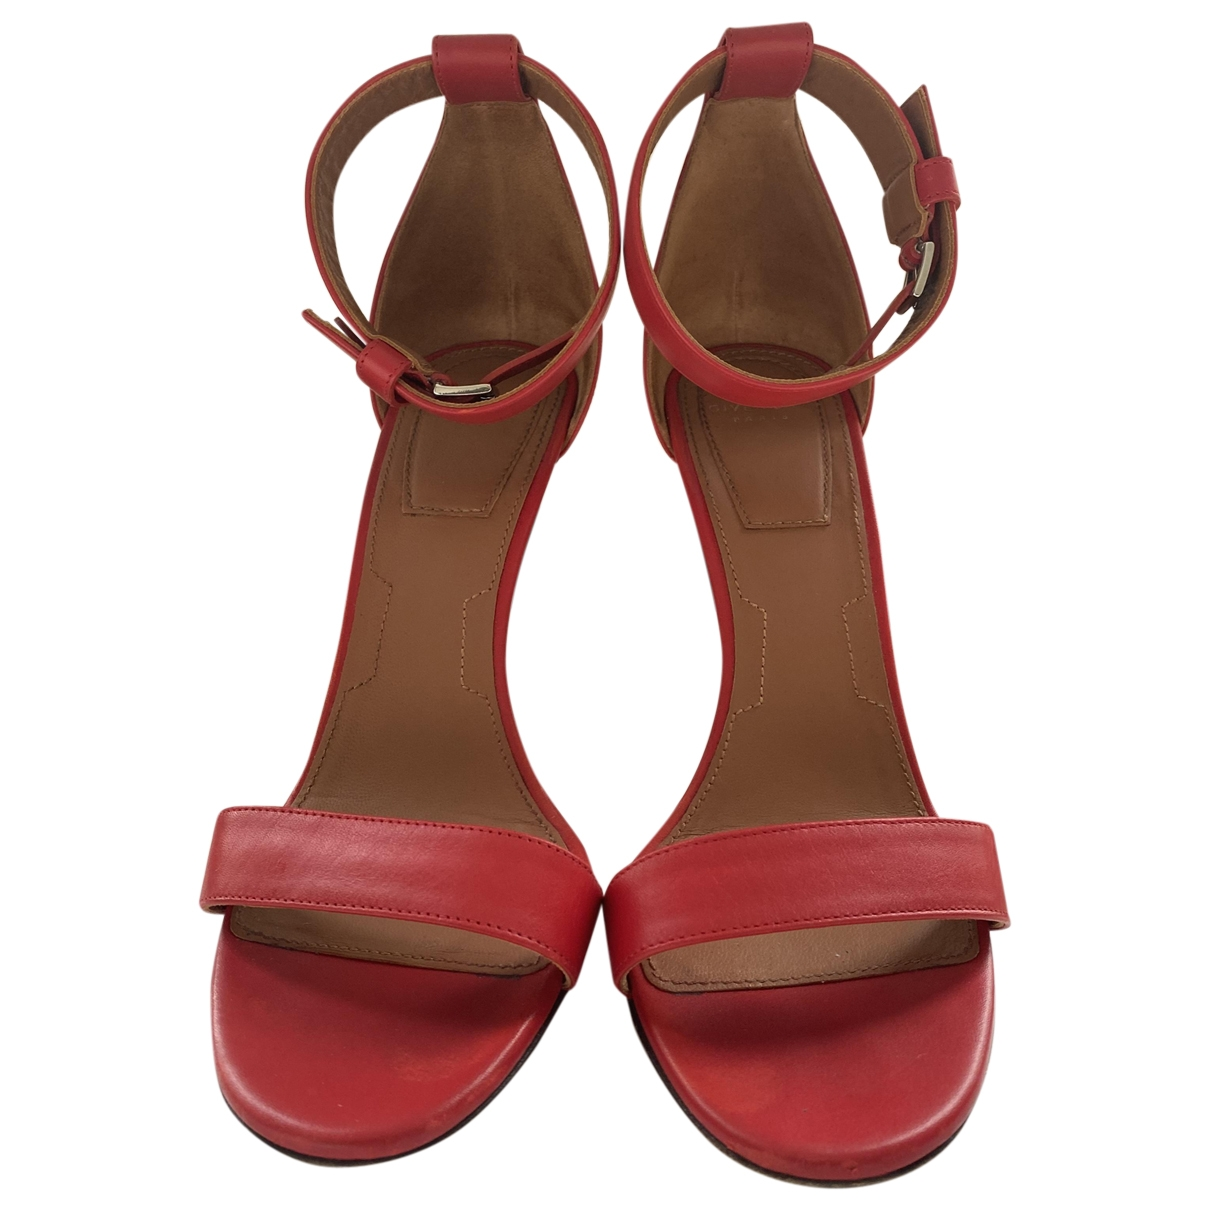 Givenchy \N Red Leather Sandals for Women 37 EU